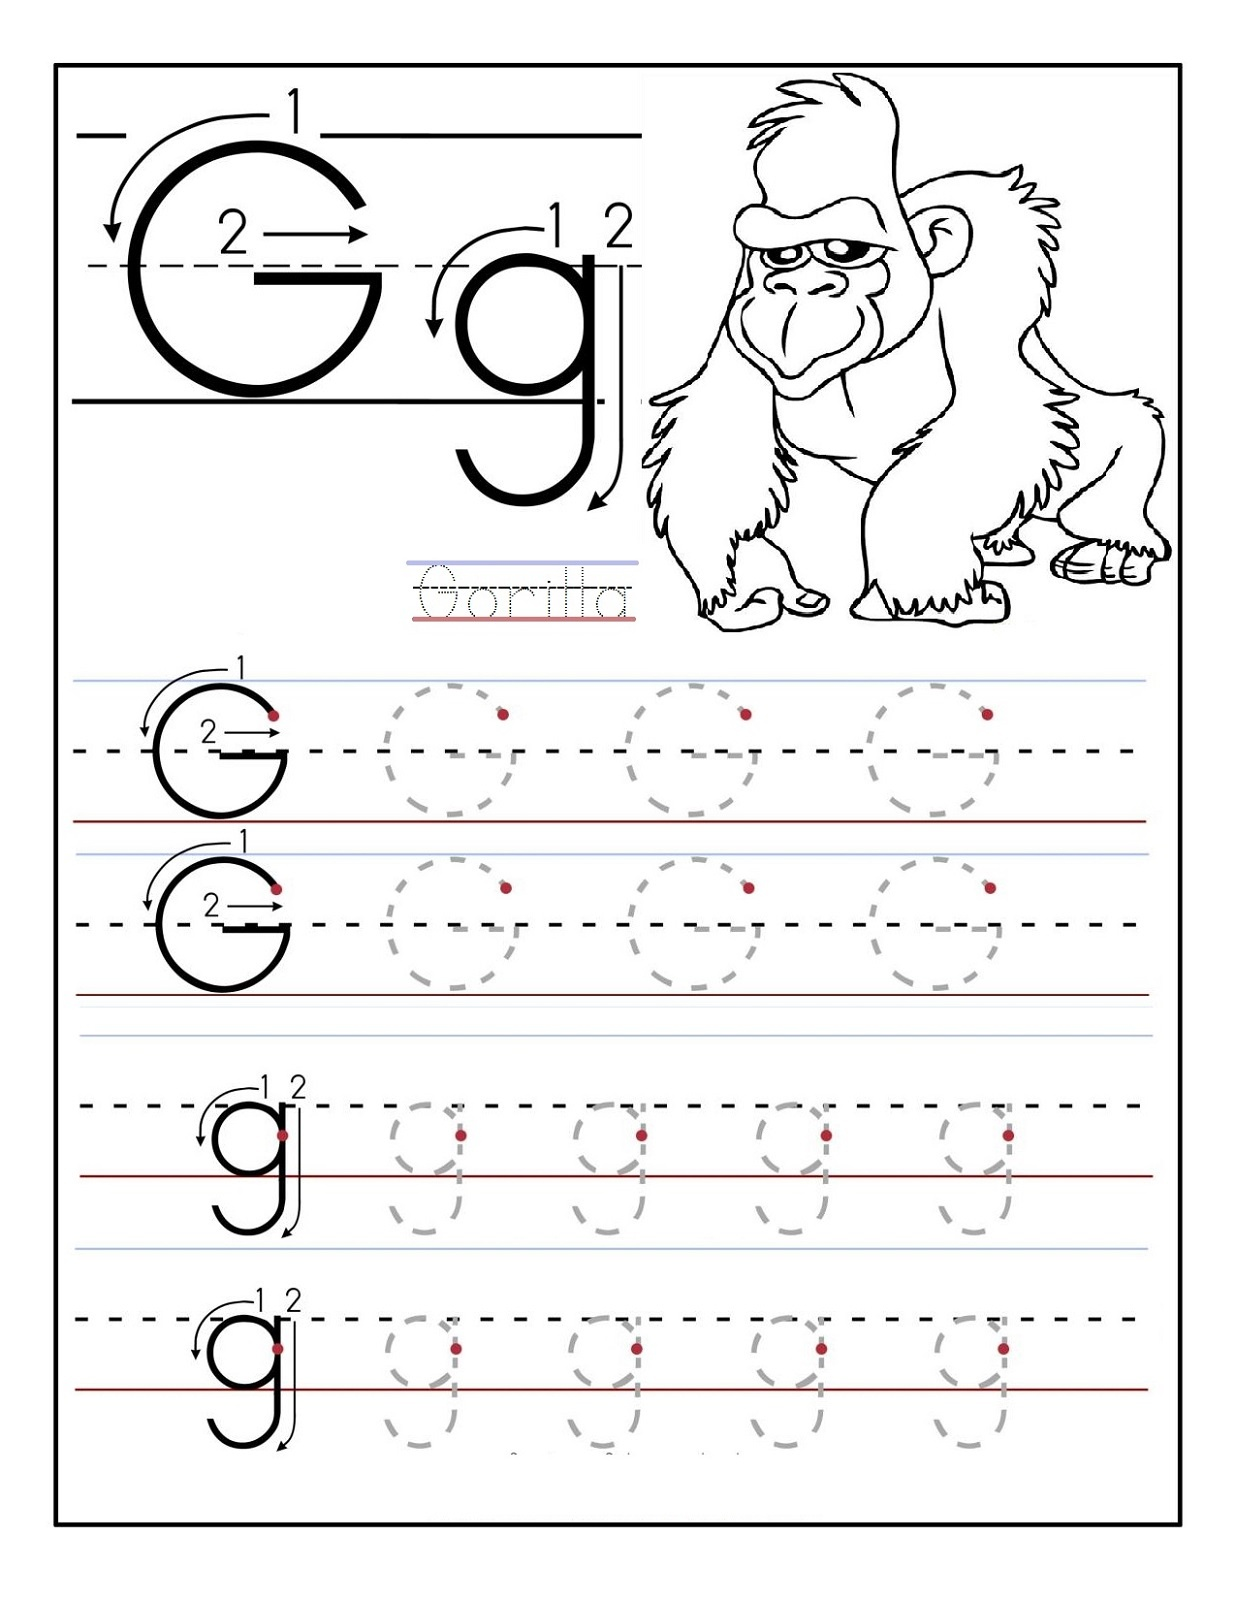 Free Printable Activities For Kids   Educative Printable - Free Printable Activities For Kids